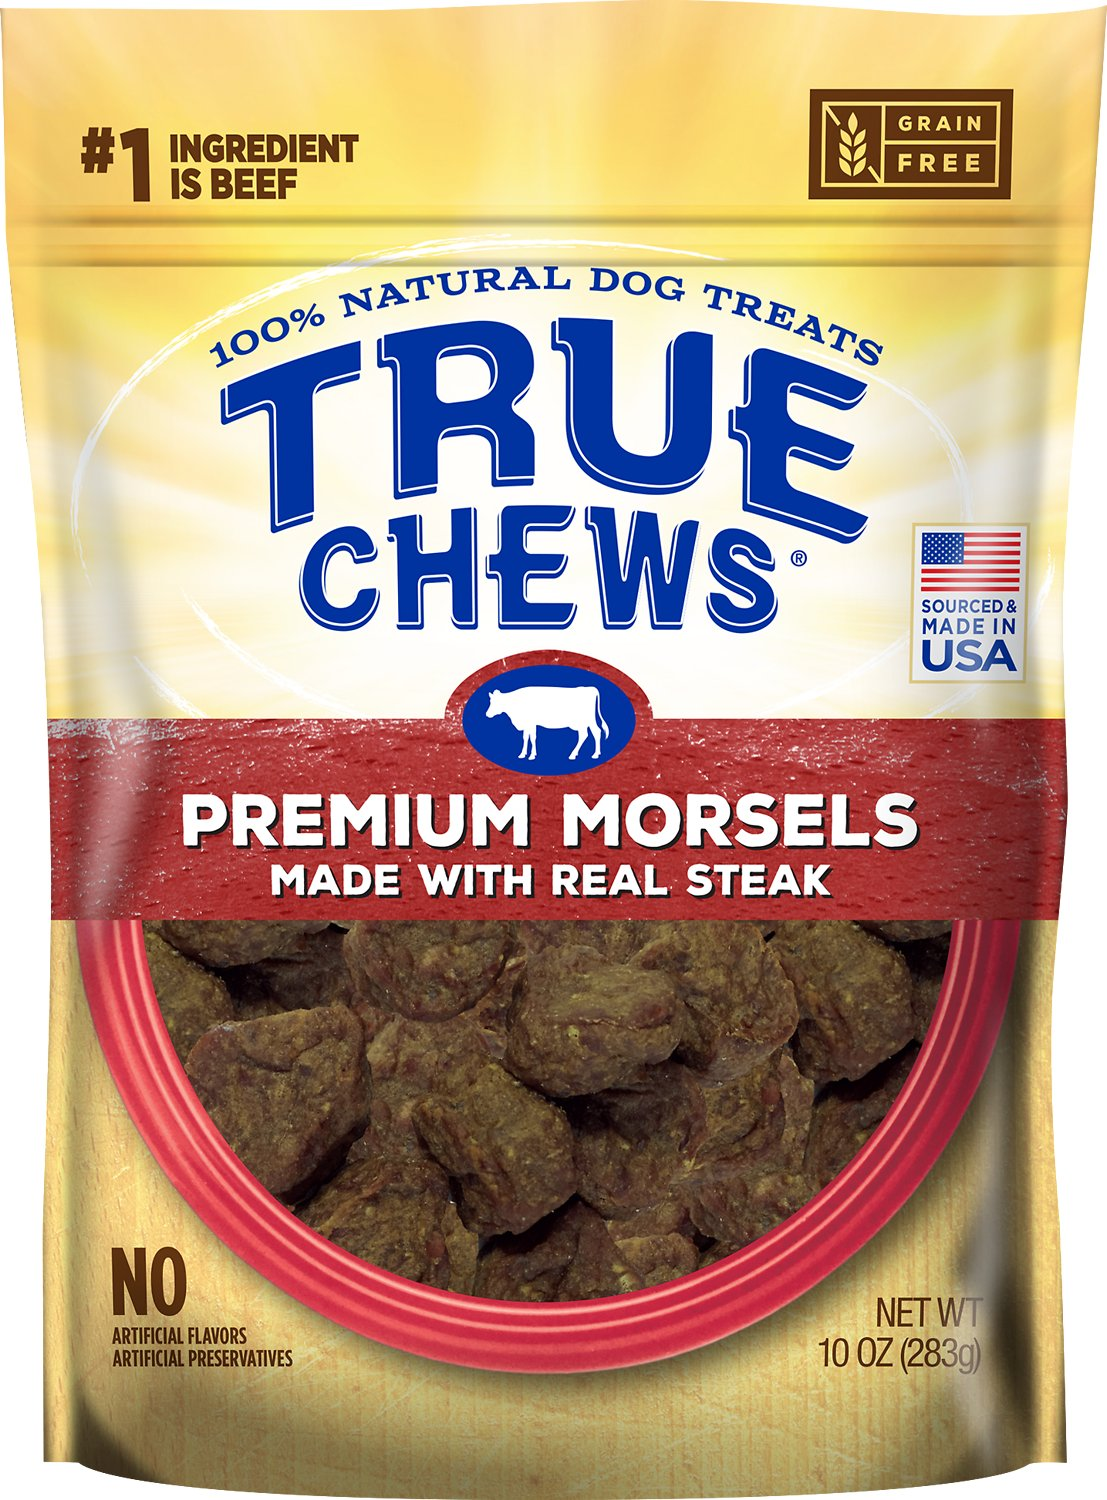 True Chews Premium Morsels with Real Steak Dog Treats, 10-oz (Size: 10-oz) Image